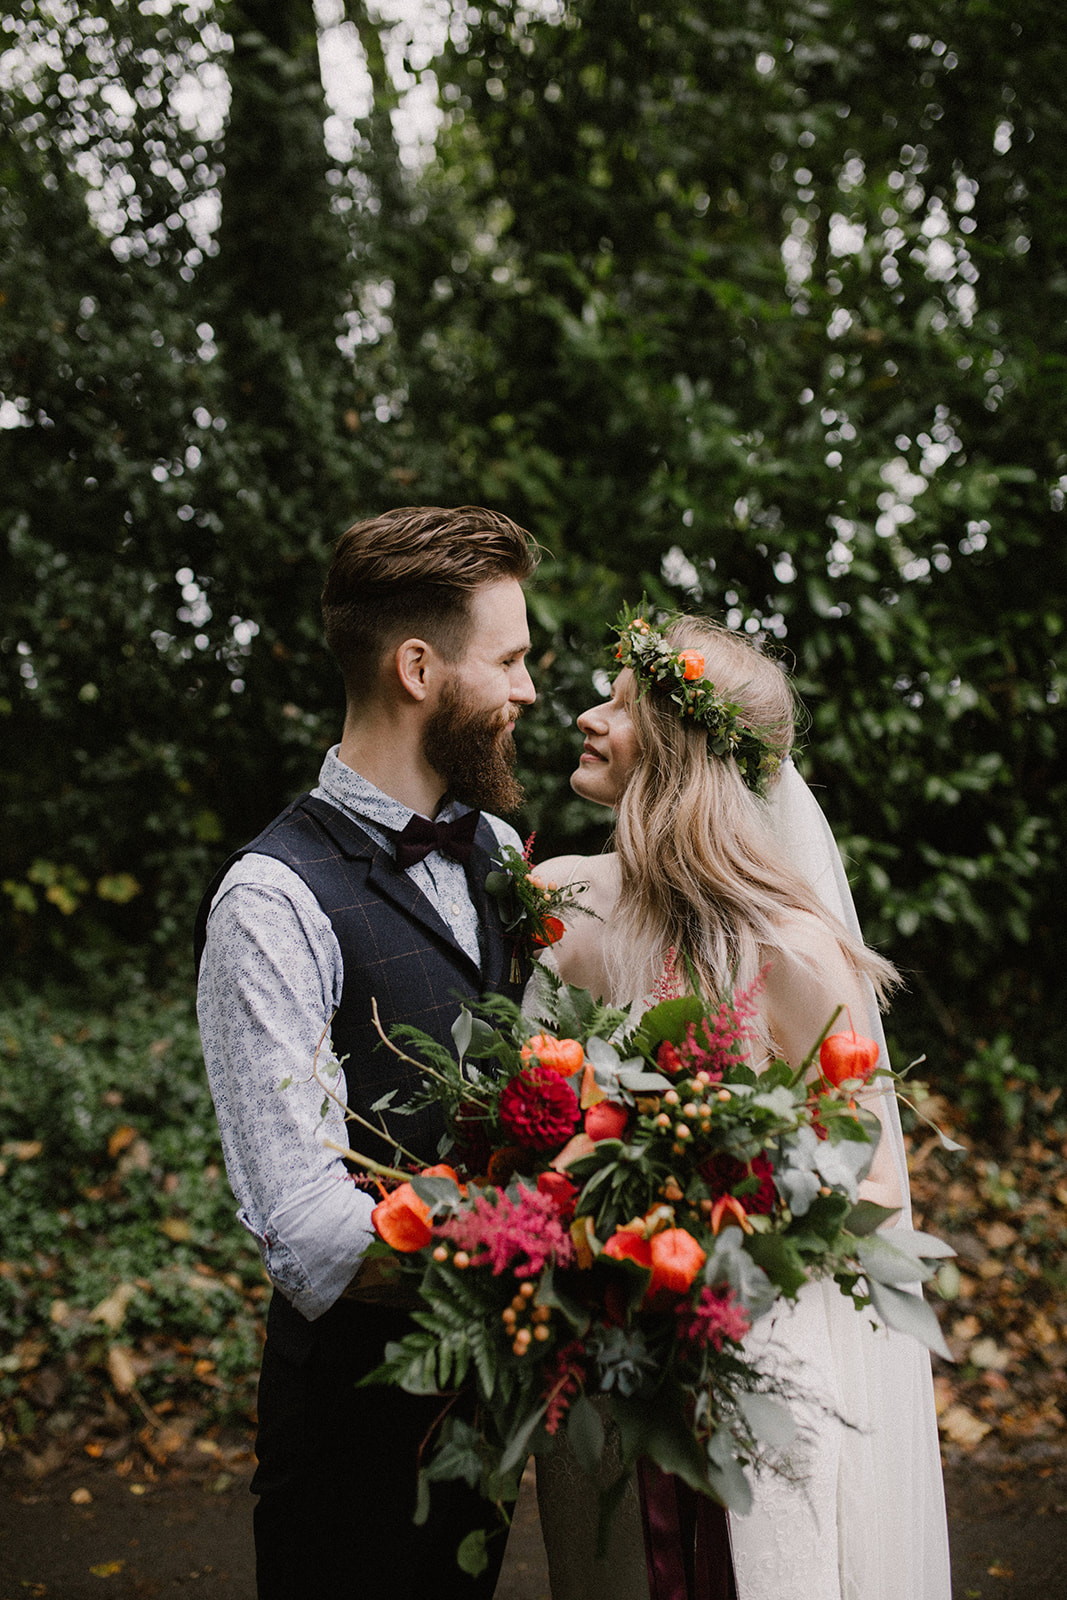 Bride and groom shot, we siad yes, burley manor wedding, autumn, bouquet, foliage, Chinese lantern, boho bride floral crown, dorset, hampshire, new forest, flowers florist